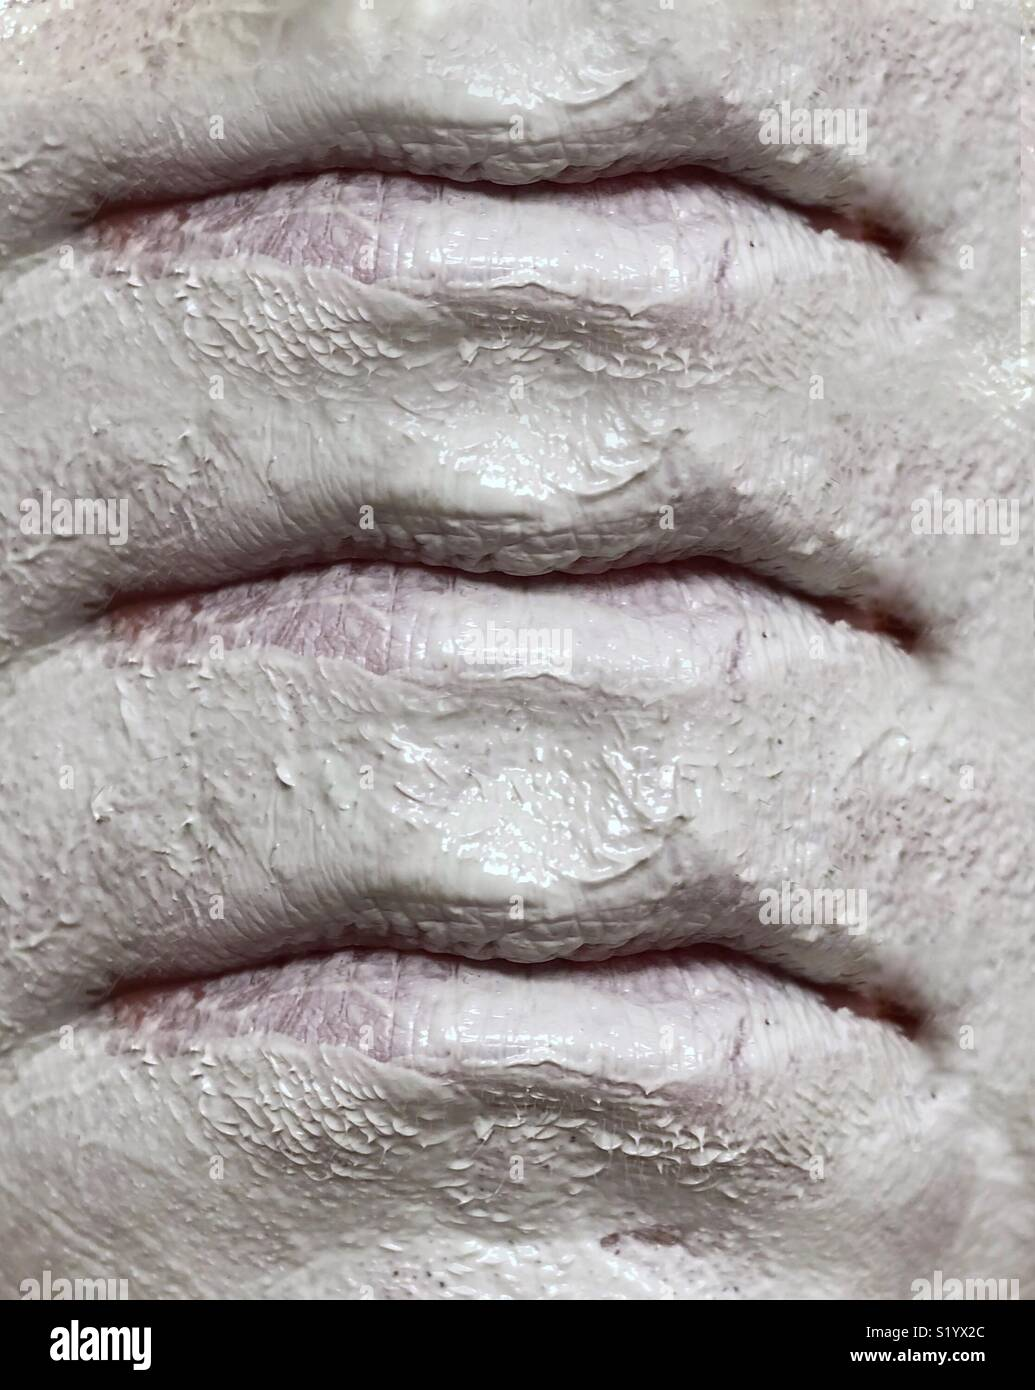 An abstract image of three sets of lips, on a face wearing a white clay mud mask - Stock Image